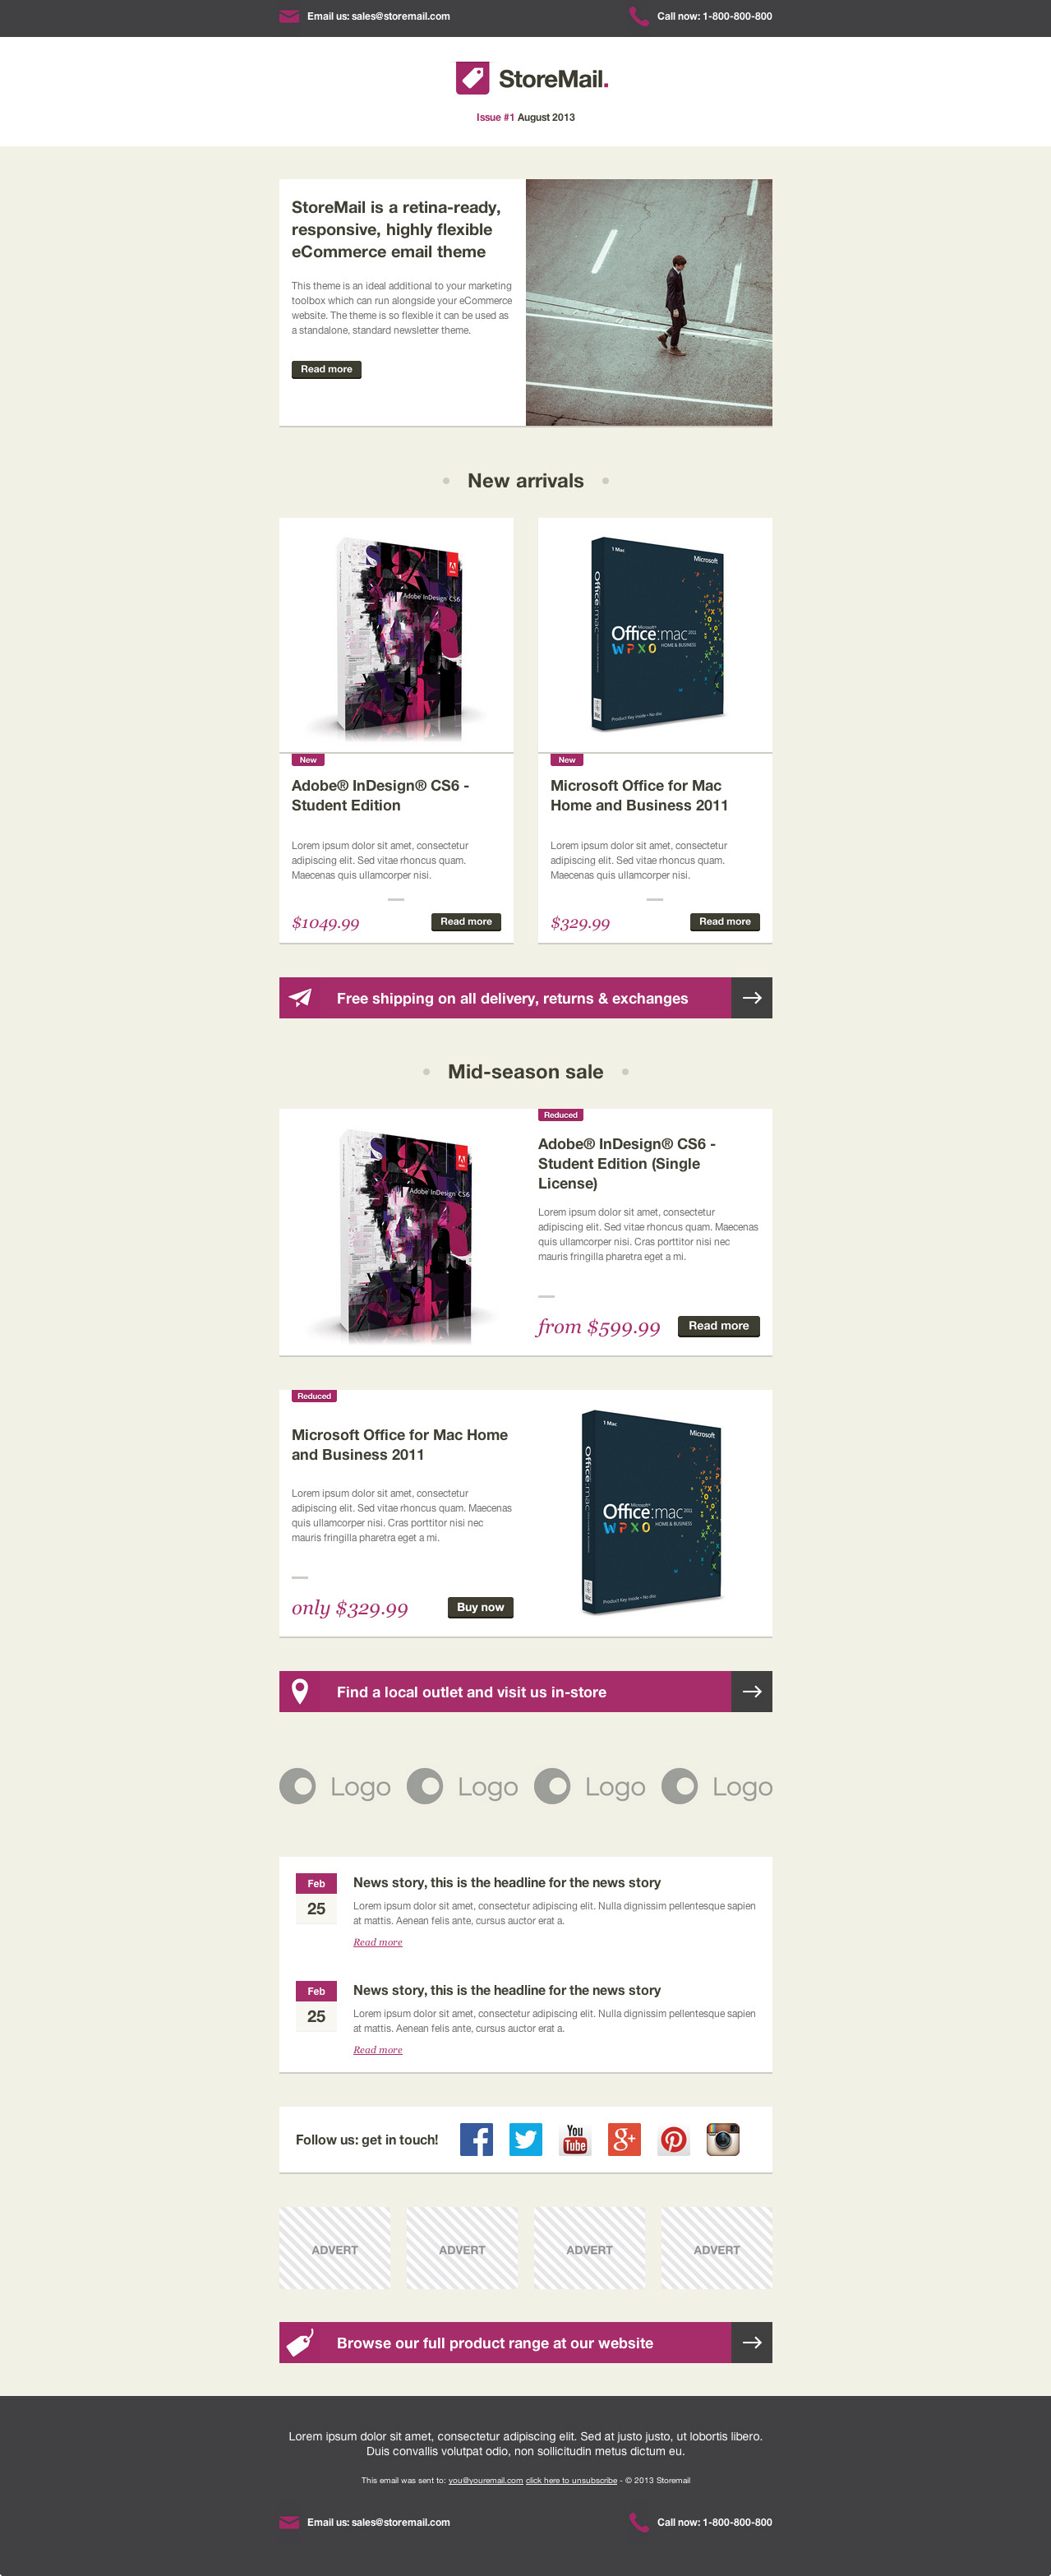 StoreMail: Responsive eCommerce Retina Email Theme